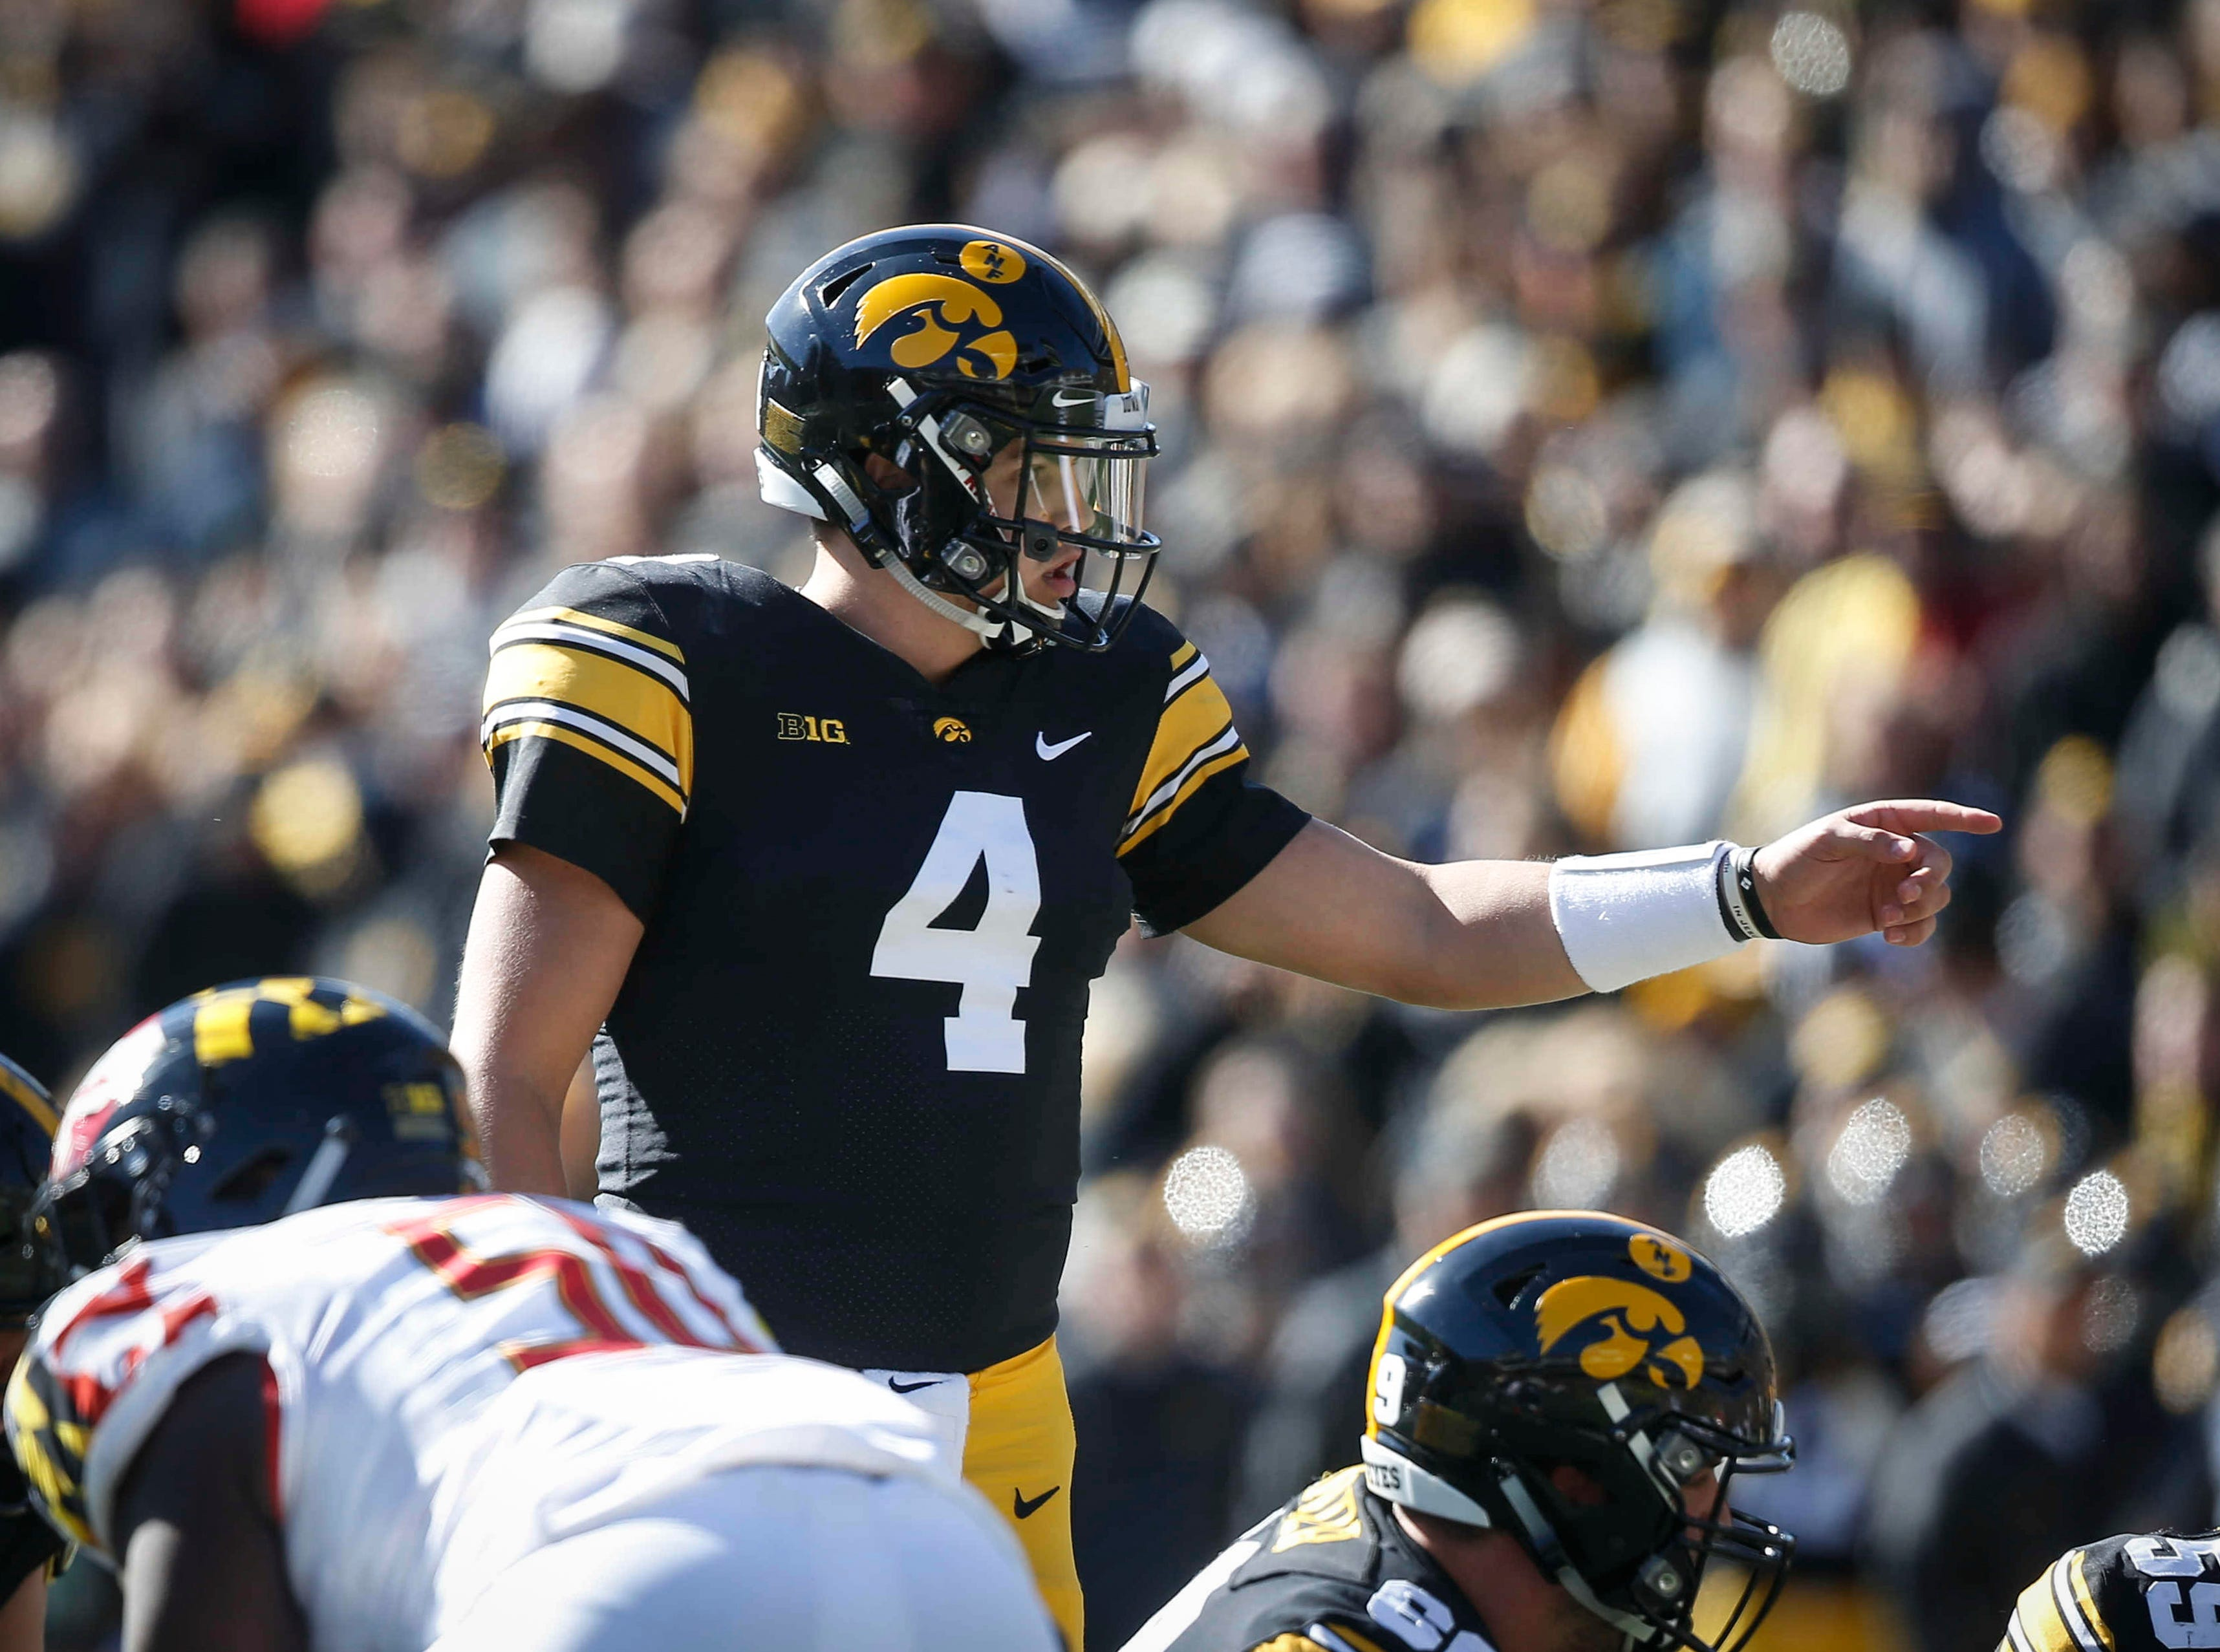 Iowa quarterback Nate Stanley directs a play against Maryland on Saturday, Oct. 20, 2018, at Kinnick Stadium in Iowa City.